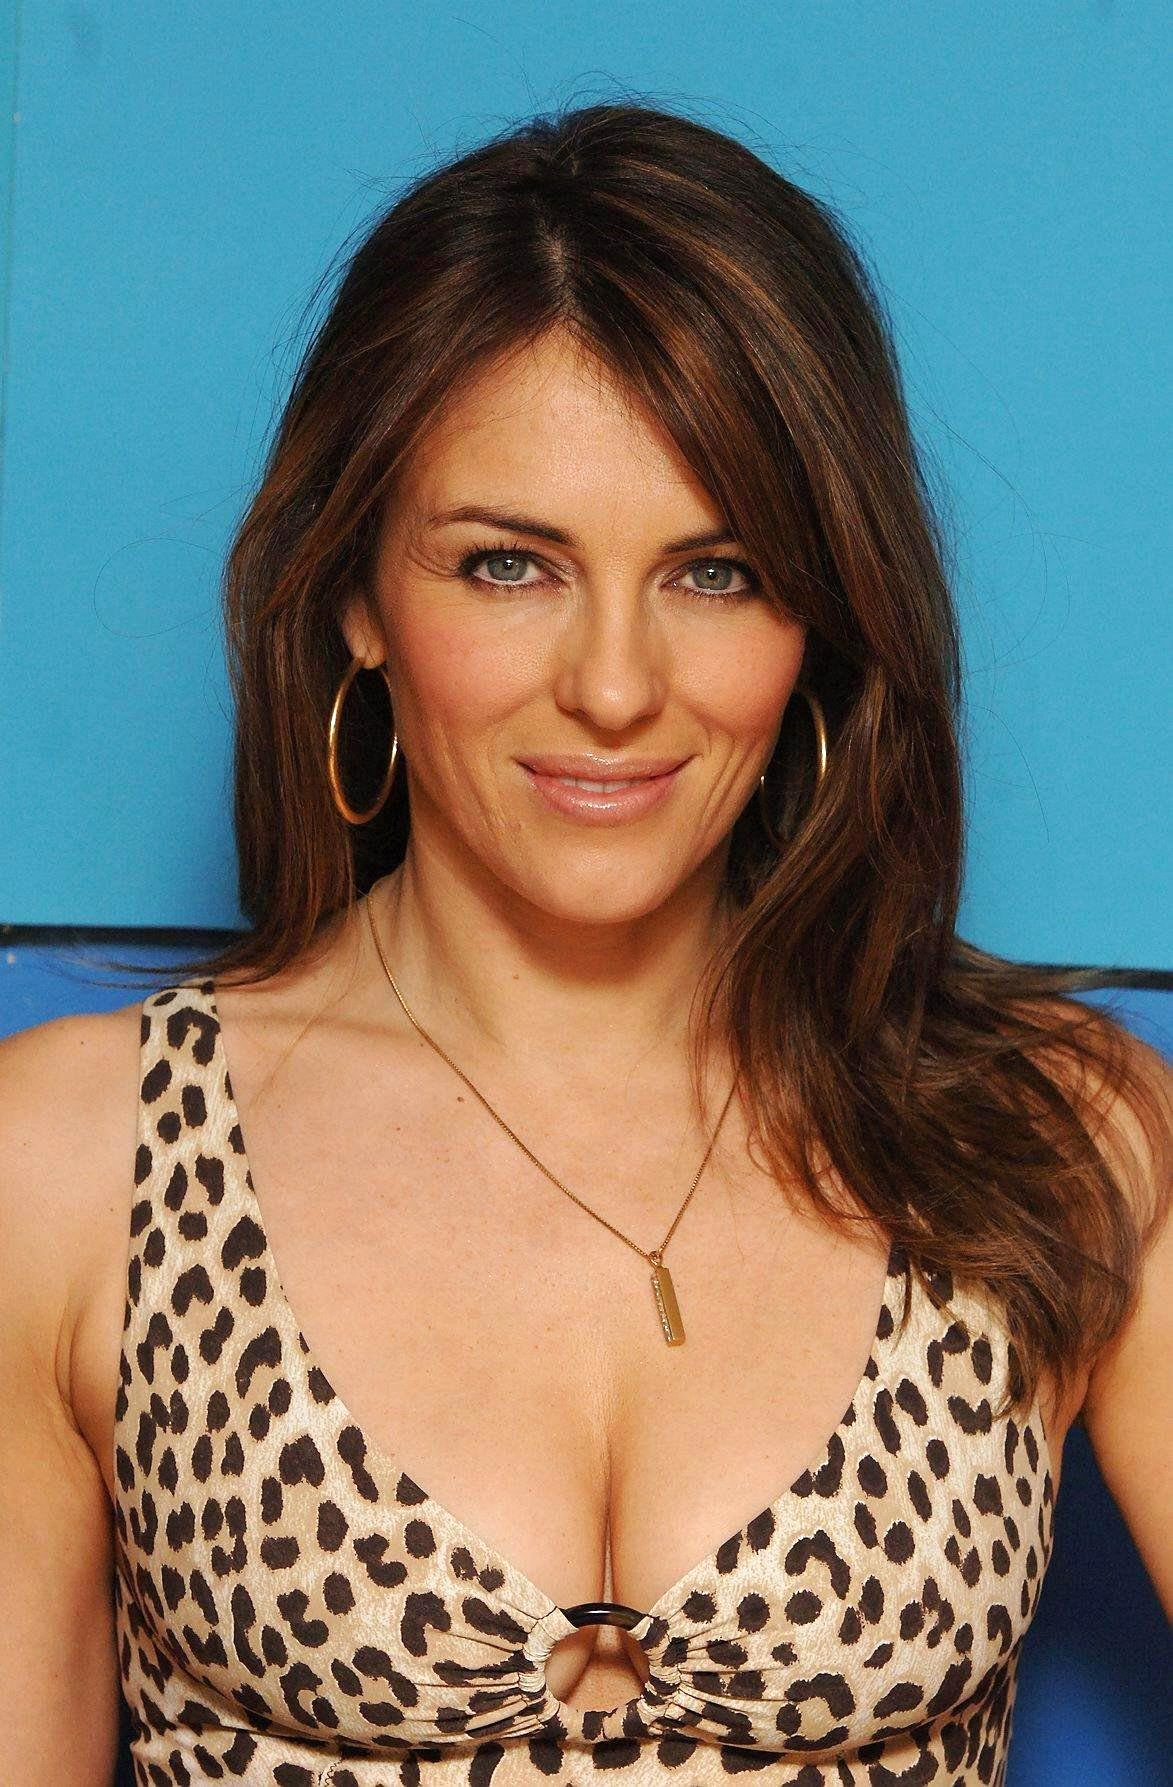 Elizabeth Hurley photo 359 of 735 pics wallpaper   photo 1173x1787